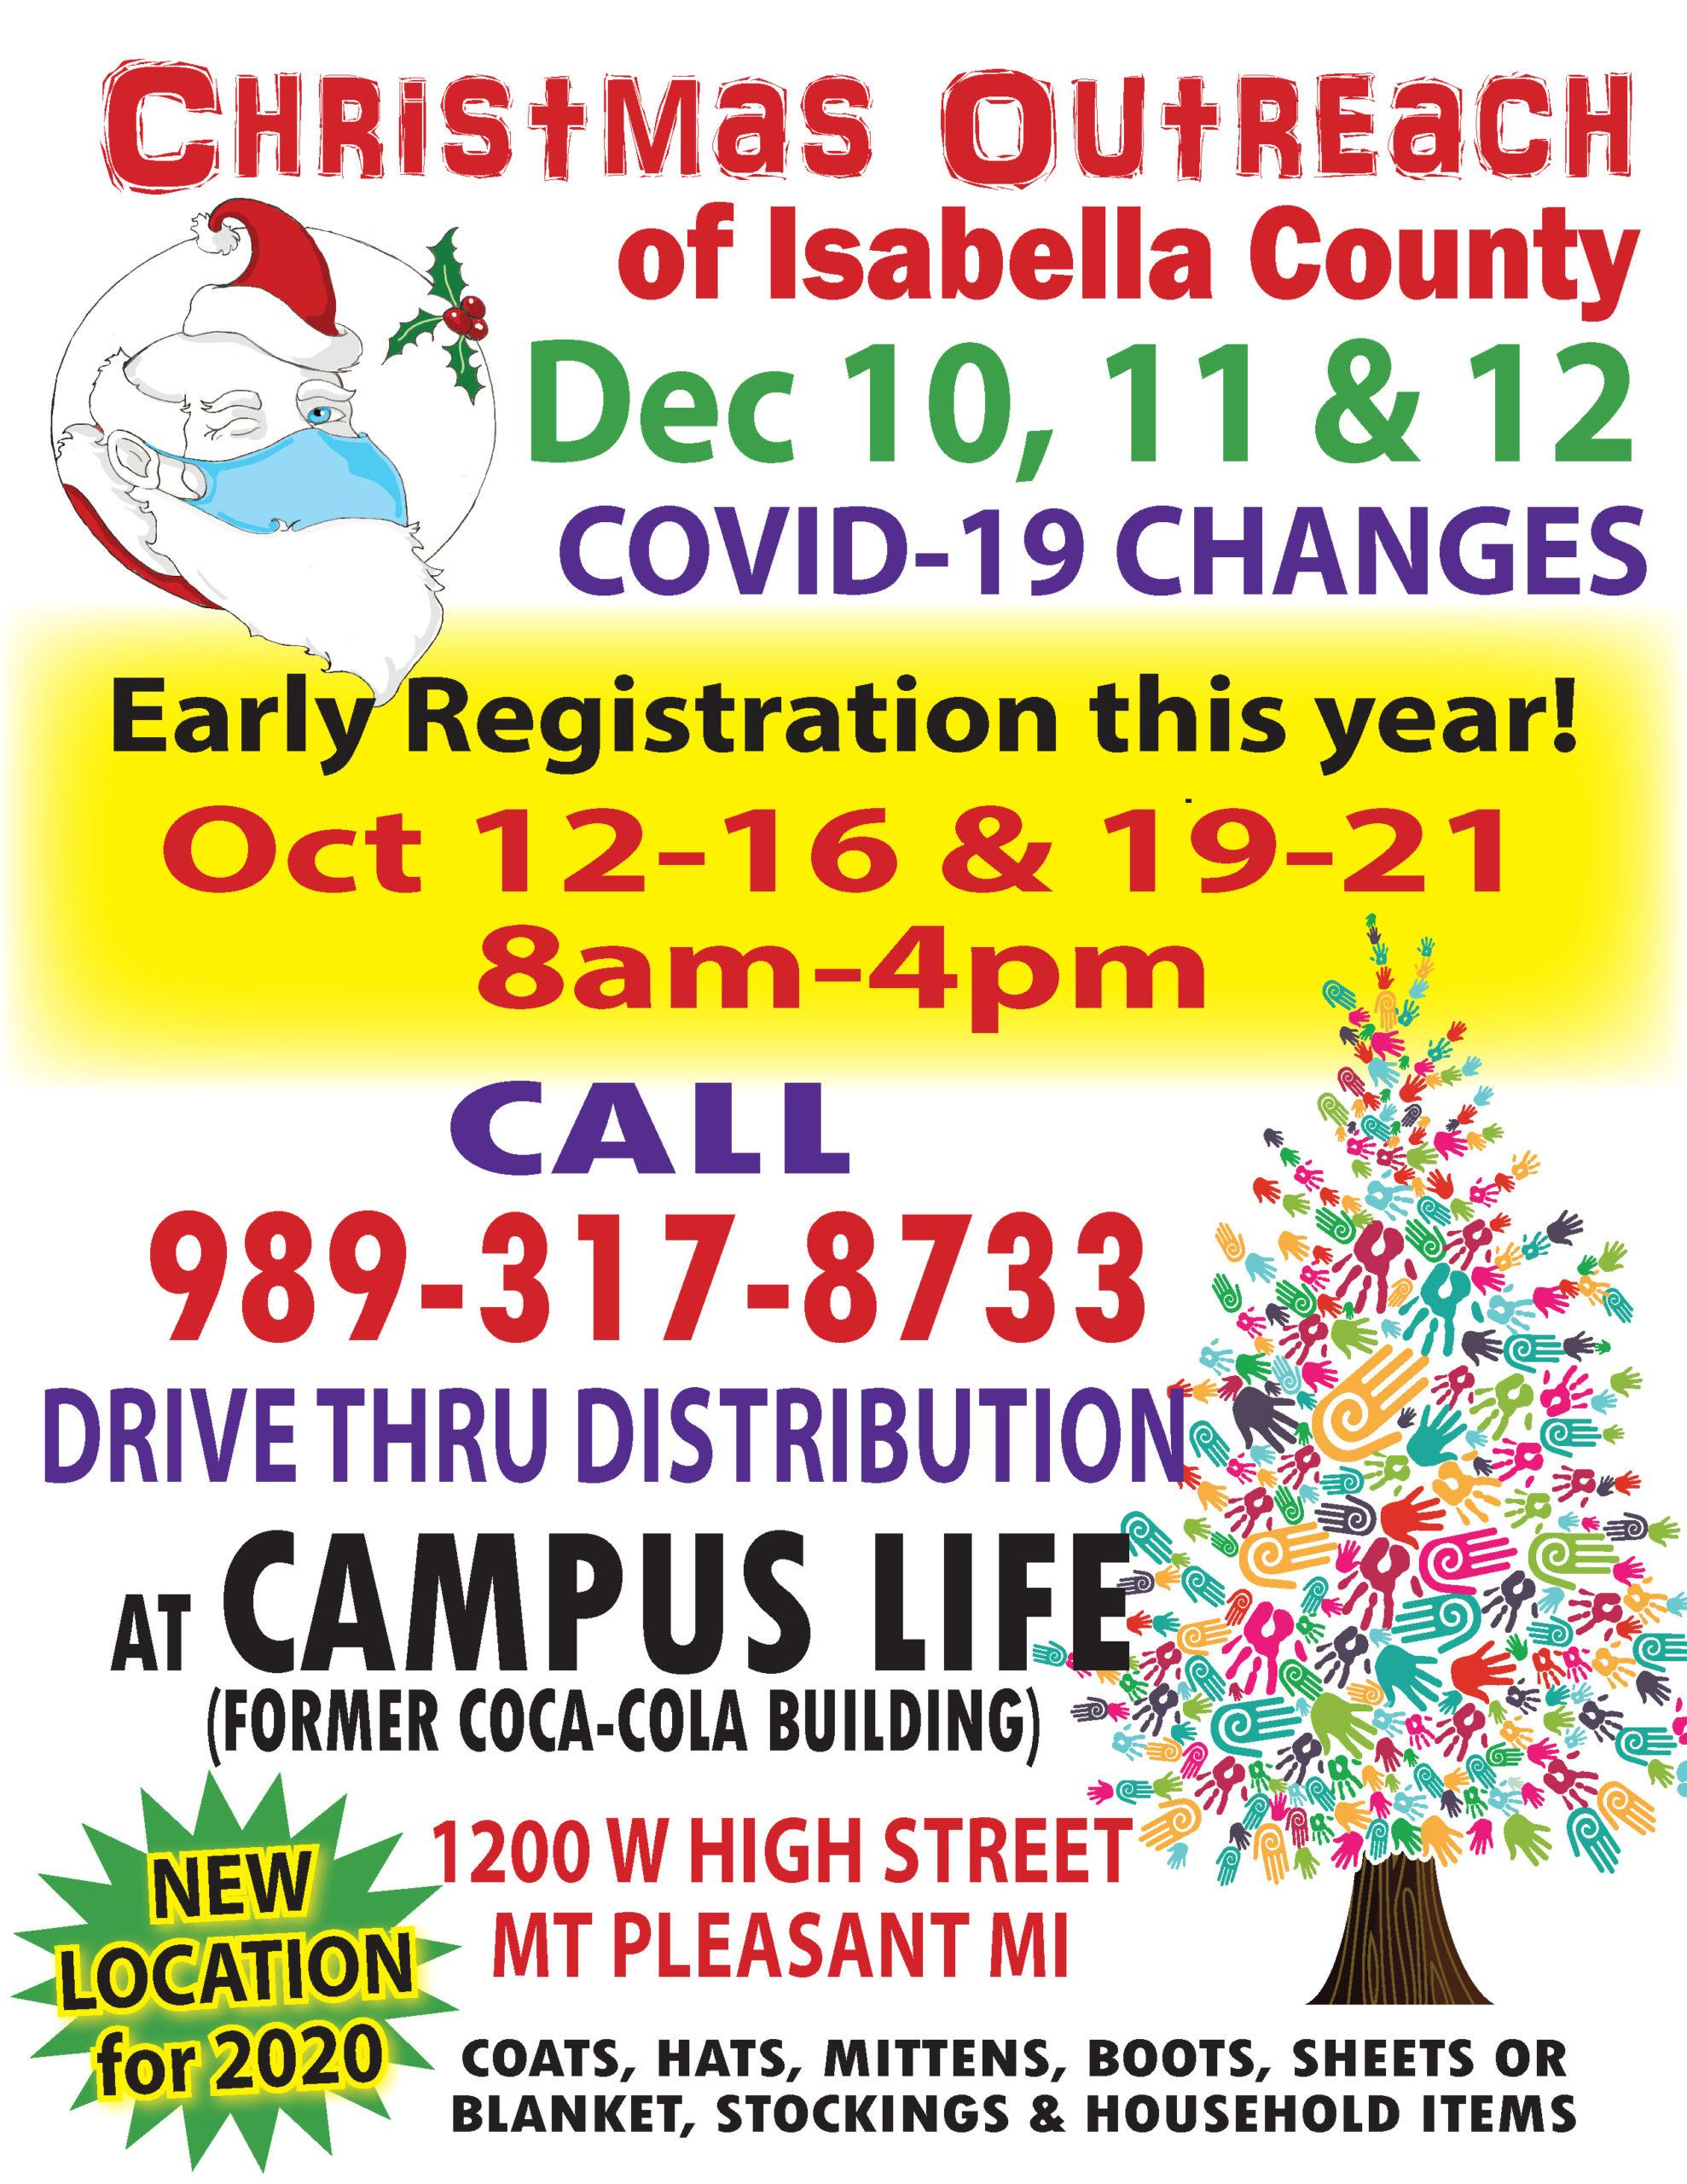 Christmas Outreach 8.5 x11 CALL IN FLYER 2020